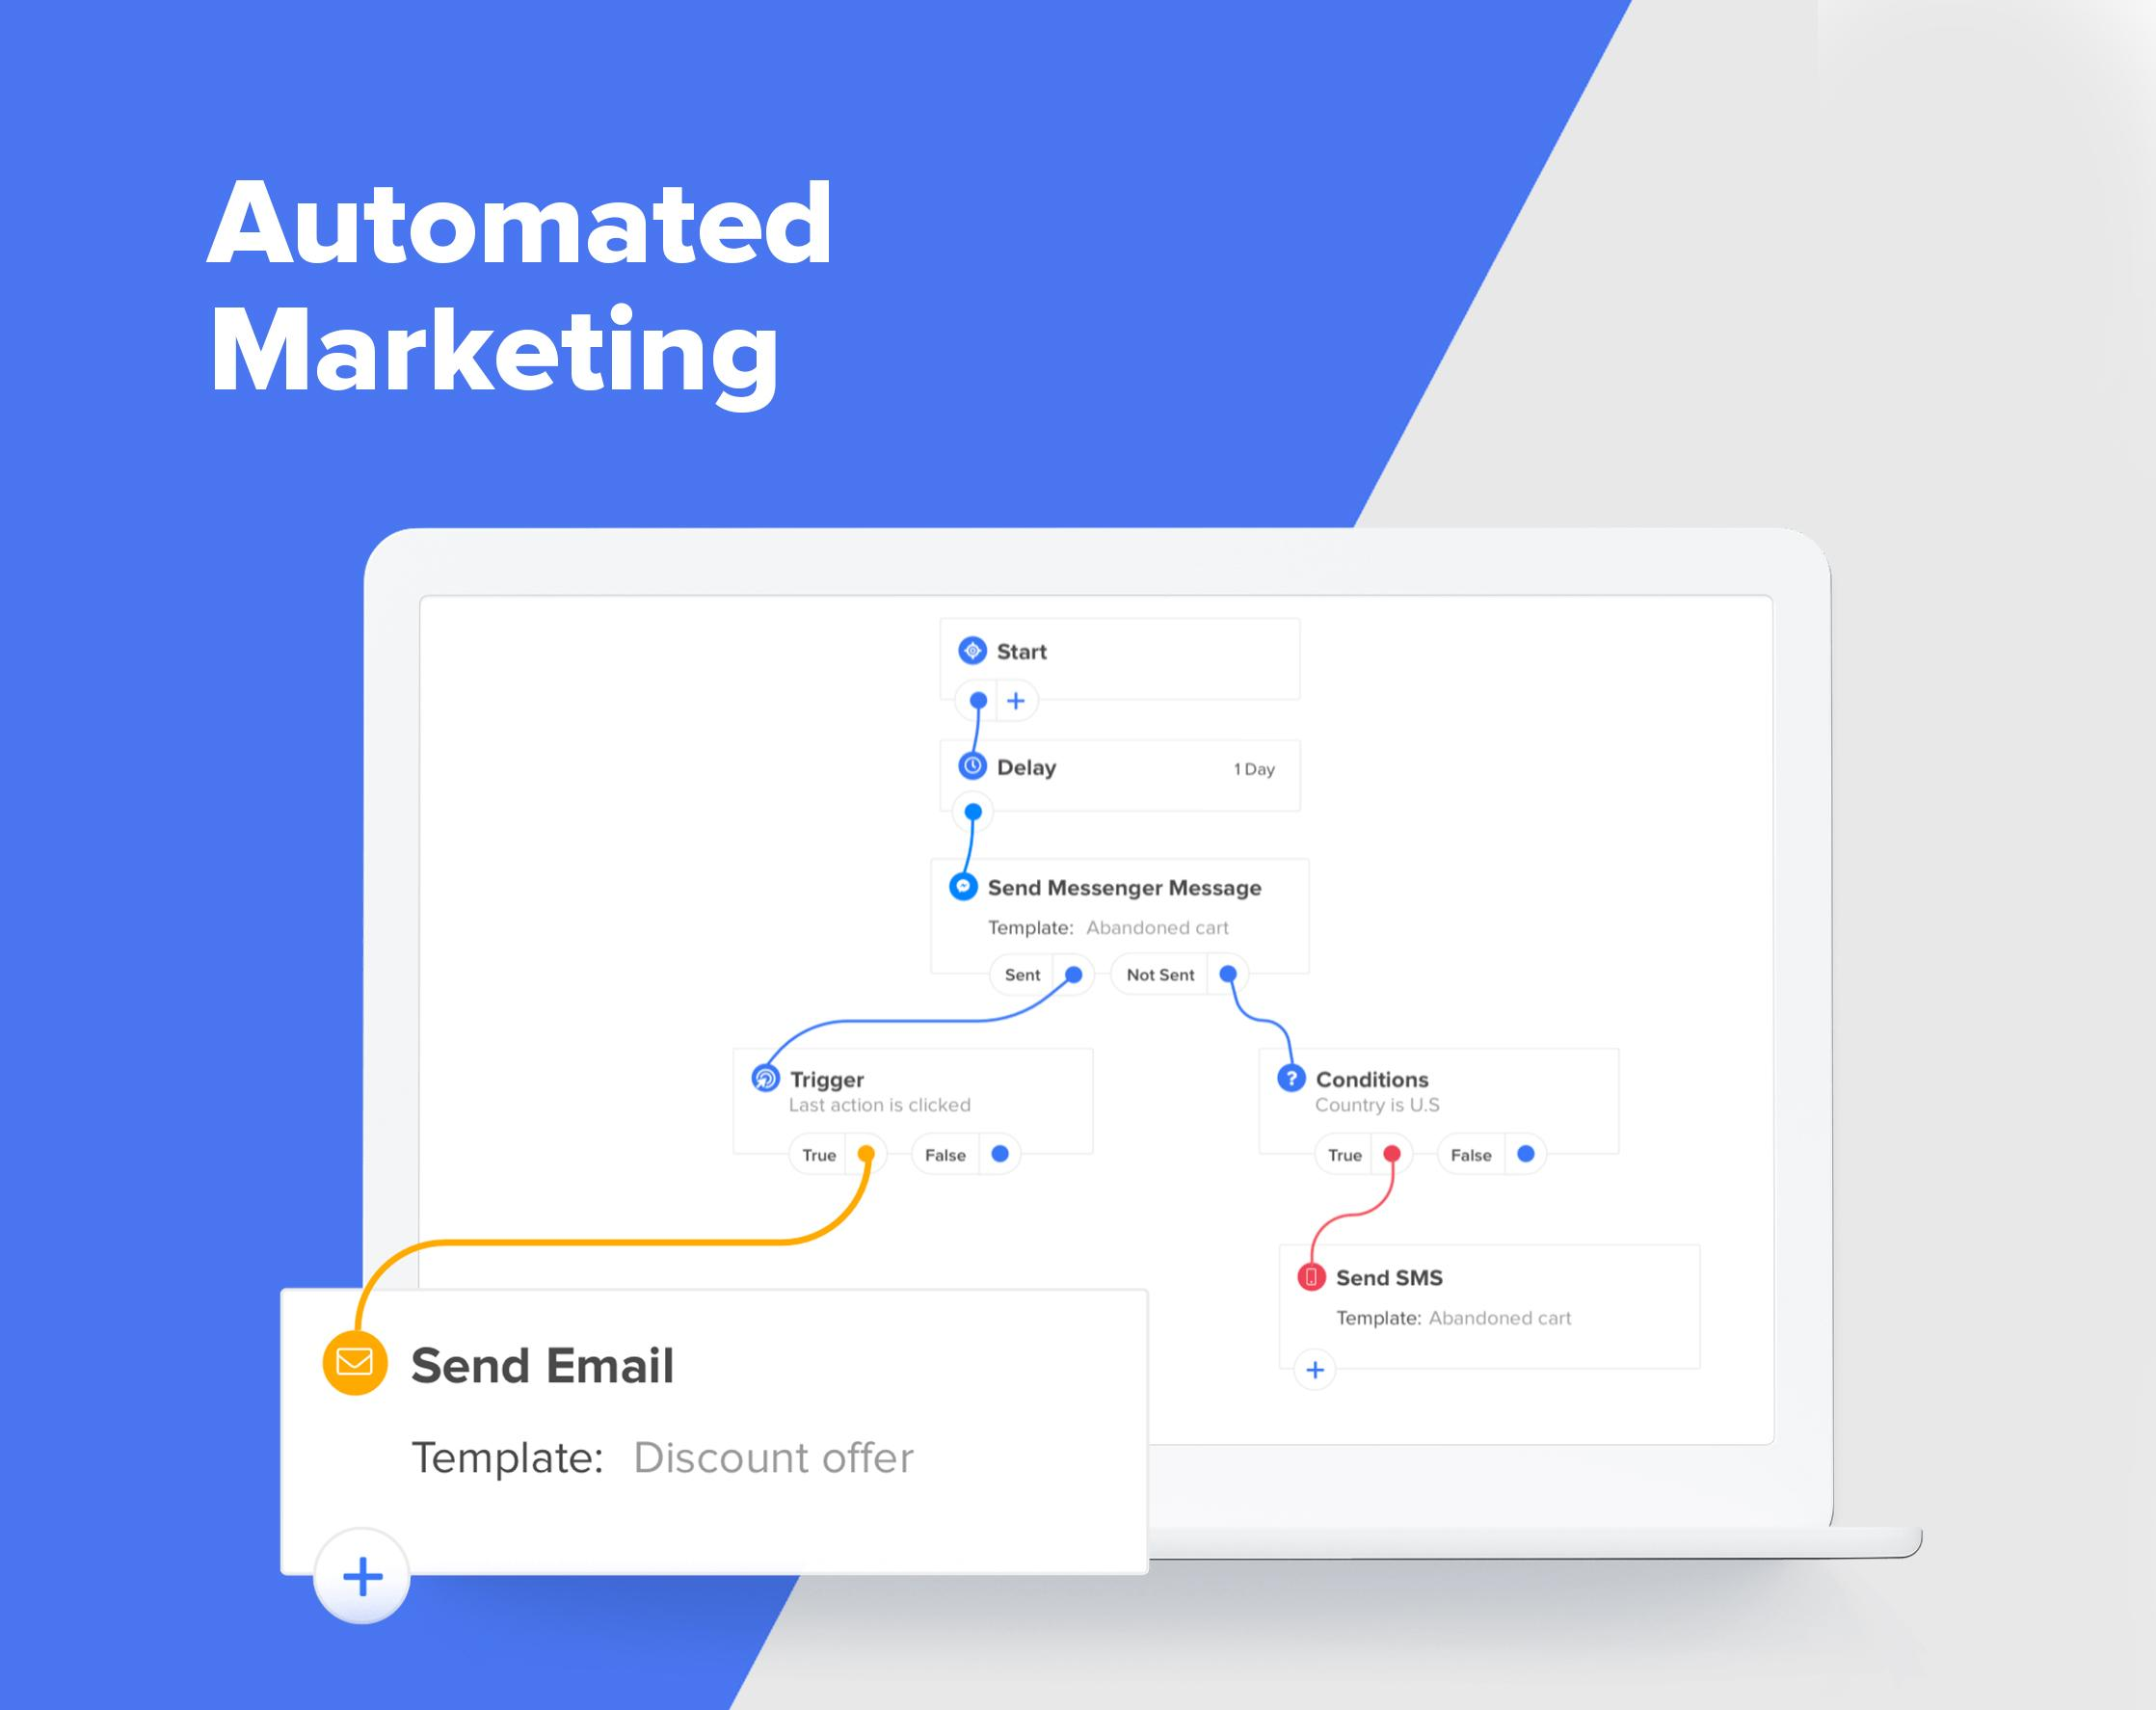 Fully automated marketing that reacts to the behavior of your customers